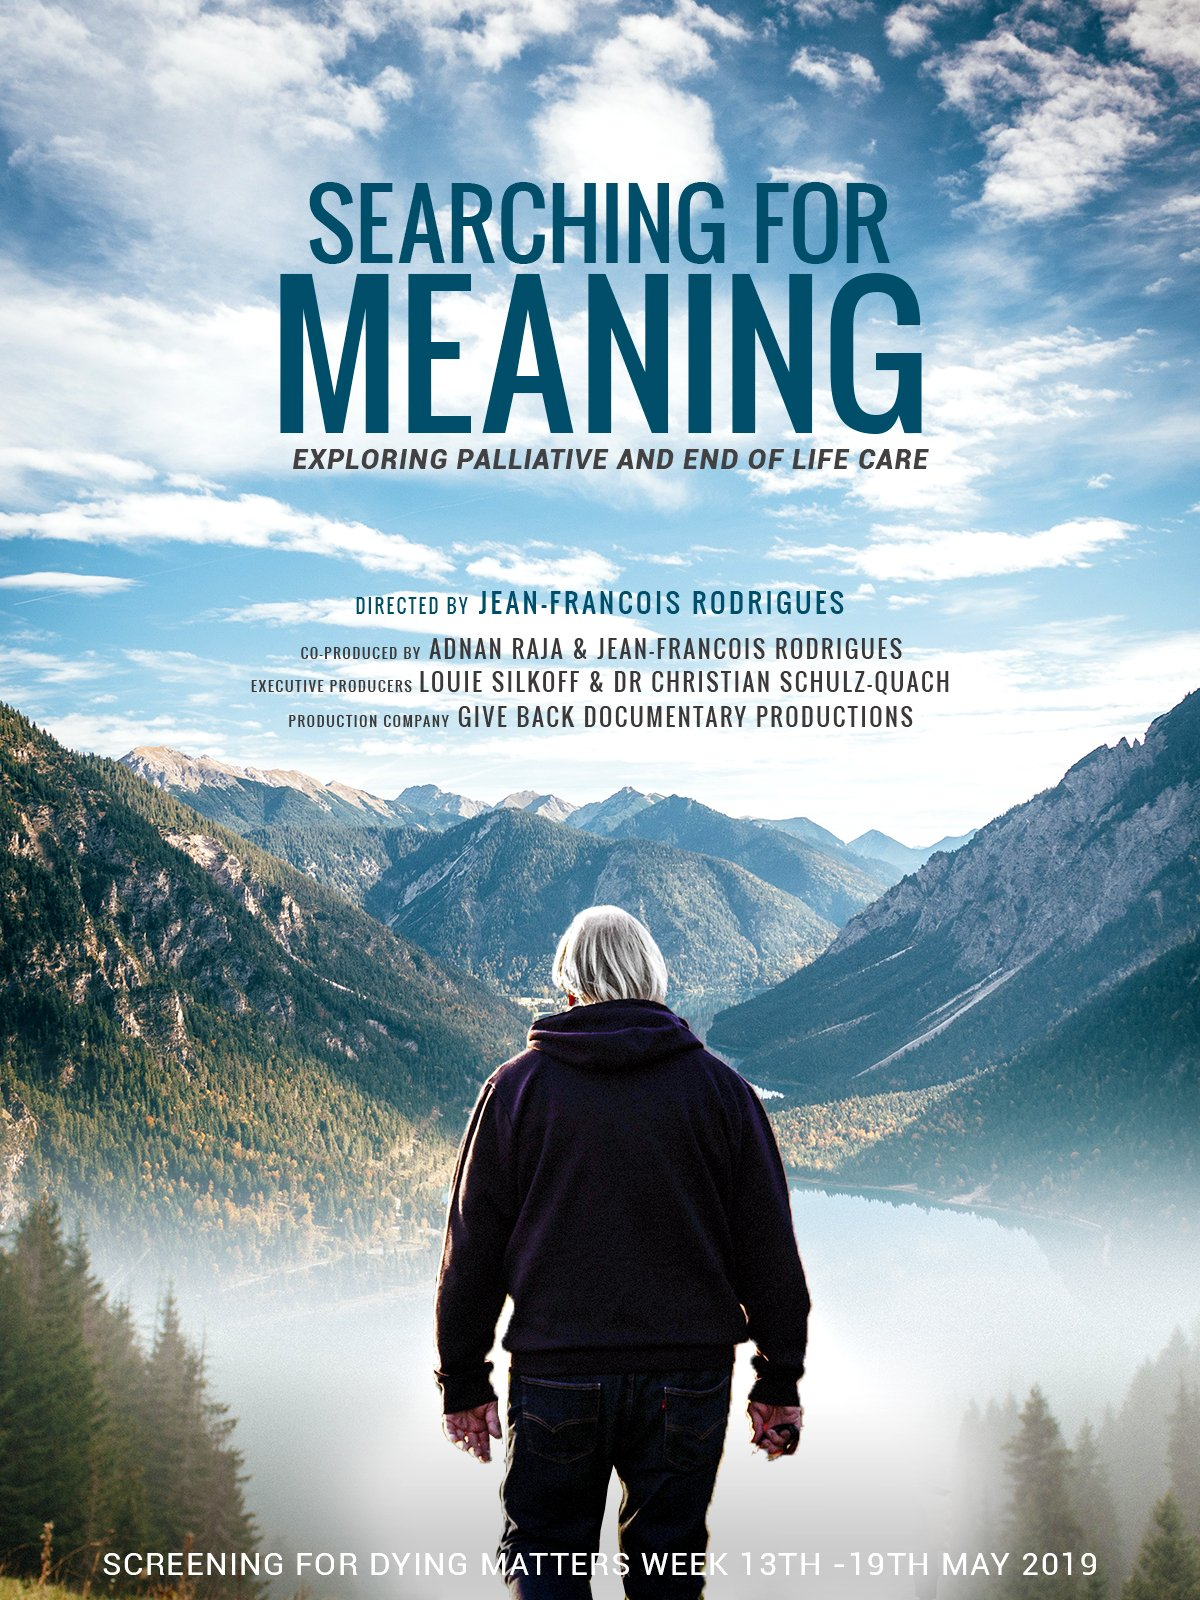 SEARCHING FOR MEANING (2019) - Feature-length documentary in association with Give Back Documentary Productions, on the important and relevant topic of Palliative Care & End of Life Care. We interviewed the UK's leading experts, along with spiritual leaders and patientshttp://www.searchingformeaning.org.uk/Searching For Meaning will premiere at the UK national 'Dying Matters Week' 13th - 10th May 2019https://www.dyingmatters.org/AwarenessWeek